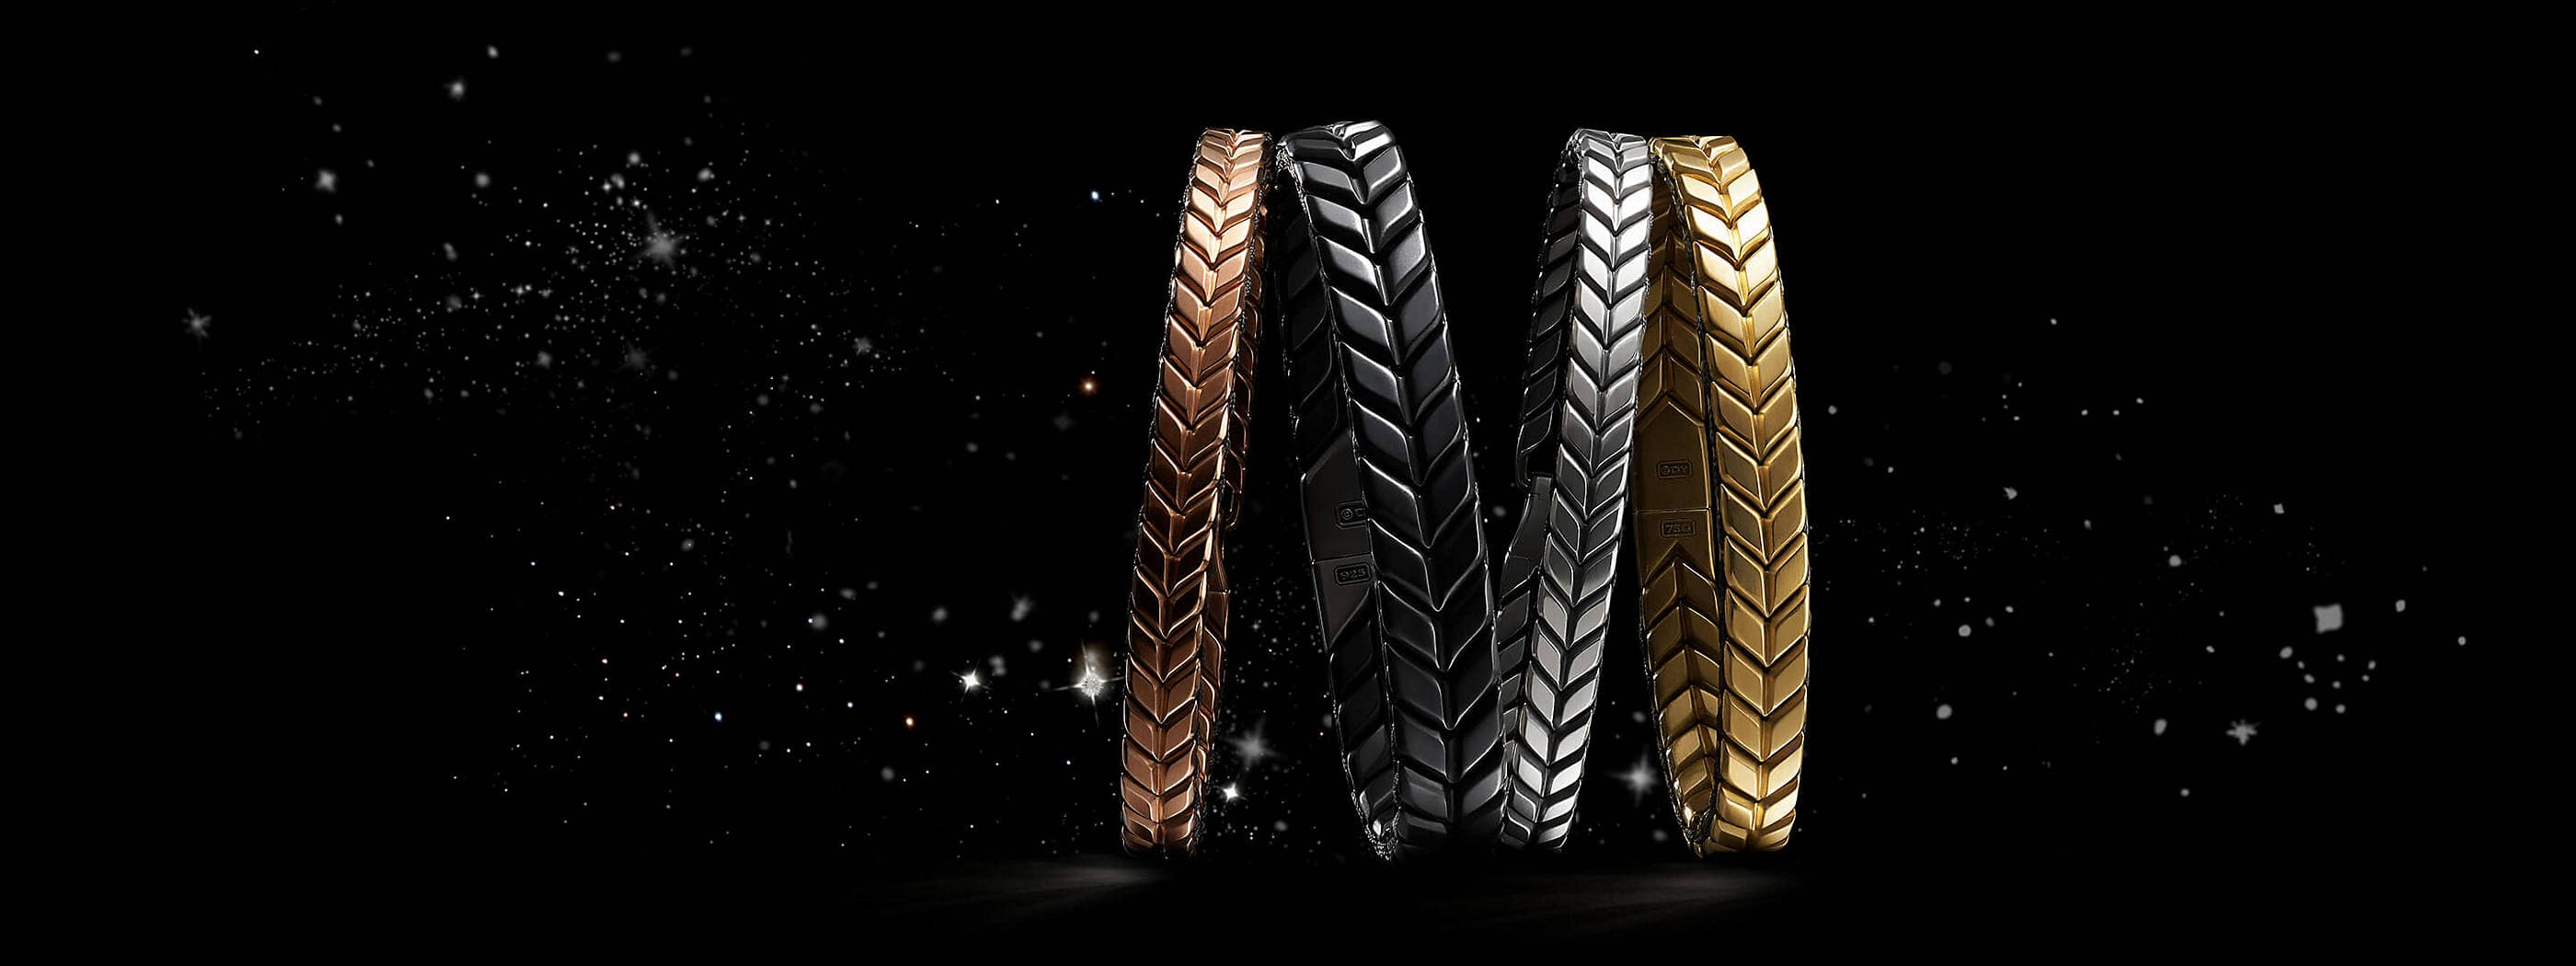 A color photograph shows a horizontal stack of four David Yurman men's Chevron bracelets leaning against each other in front of a starry night sky. The bracelets are crafted from 18K rose gold, black titanium with sterling silver, sterling silver or 18K yellow gold.